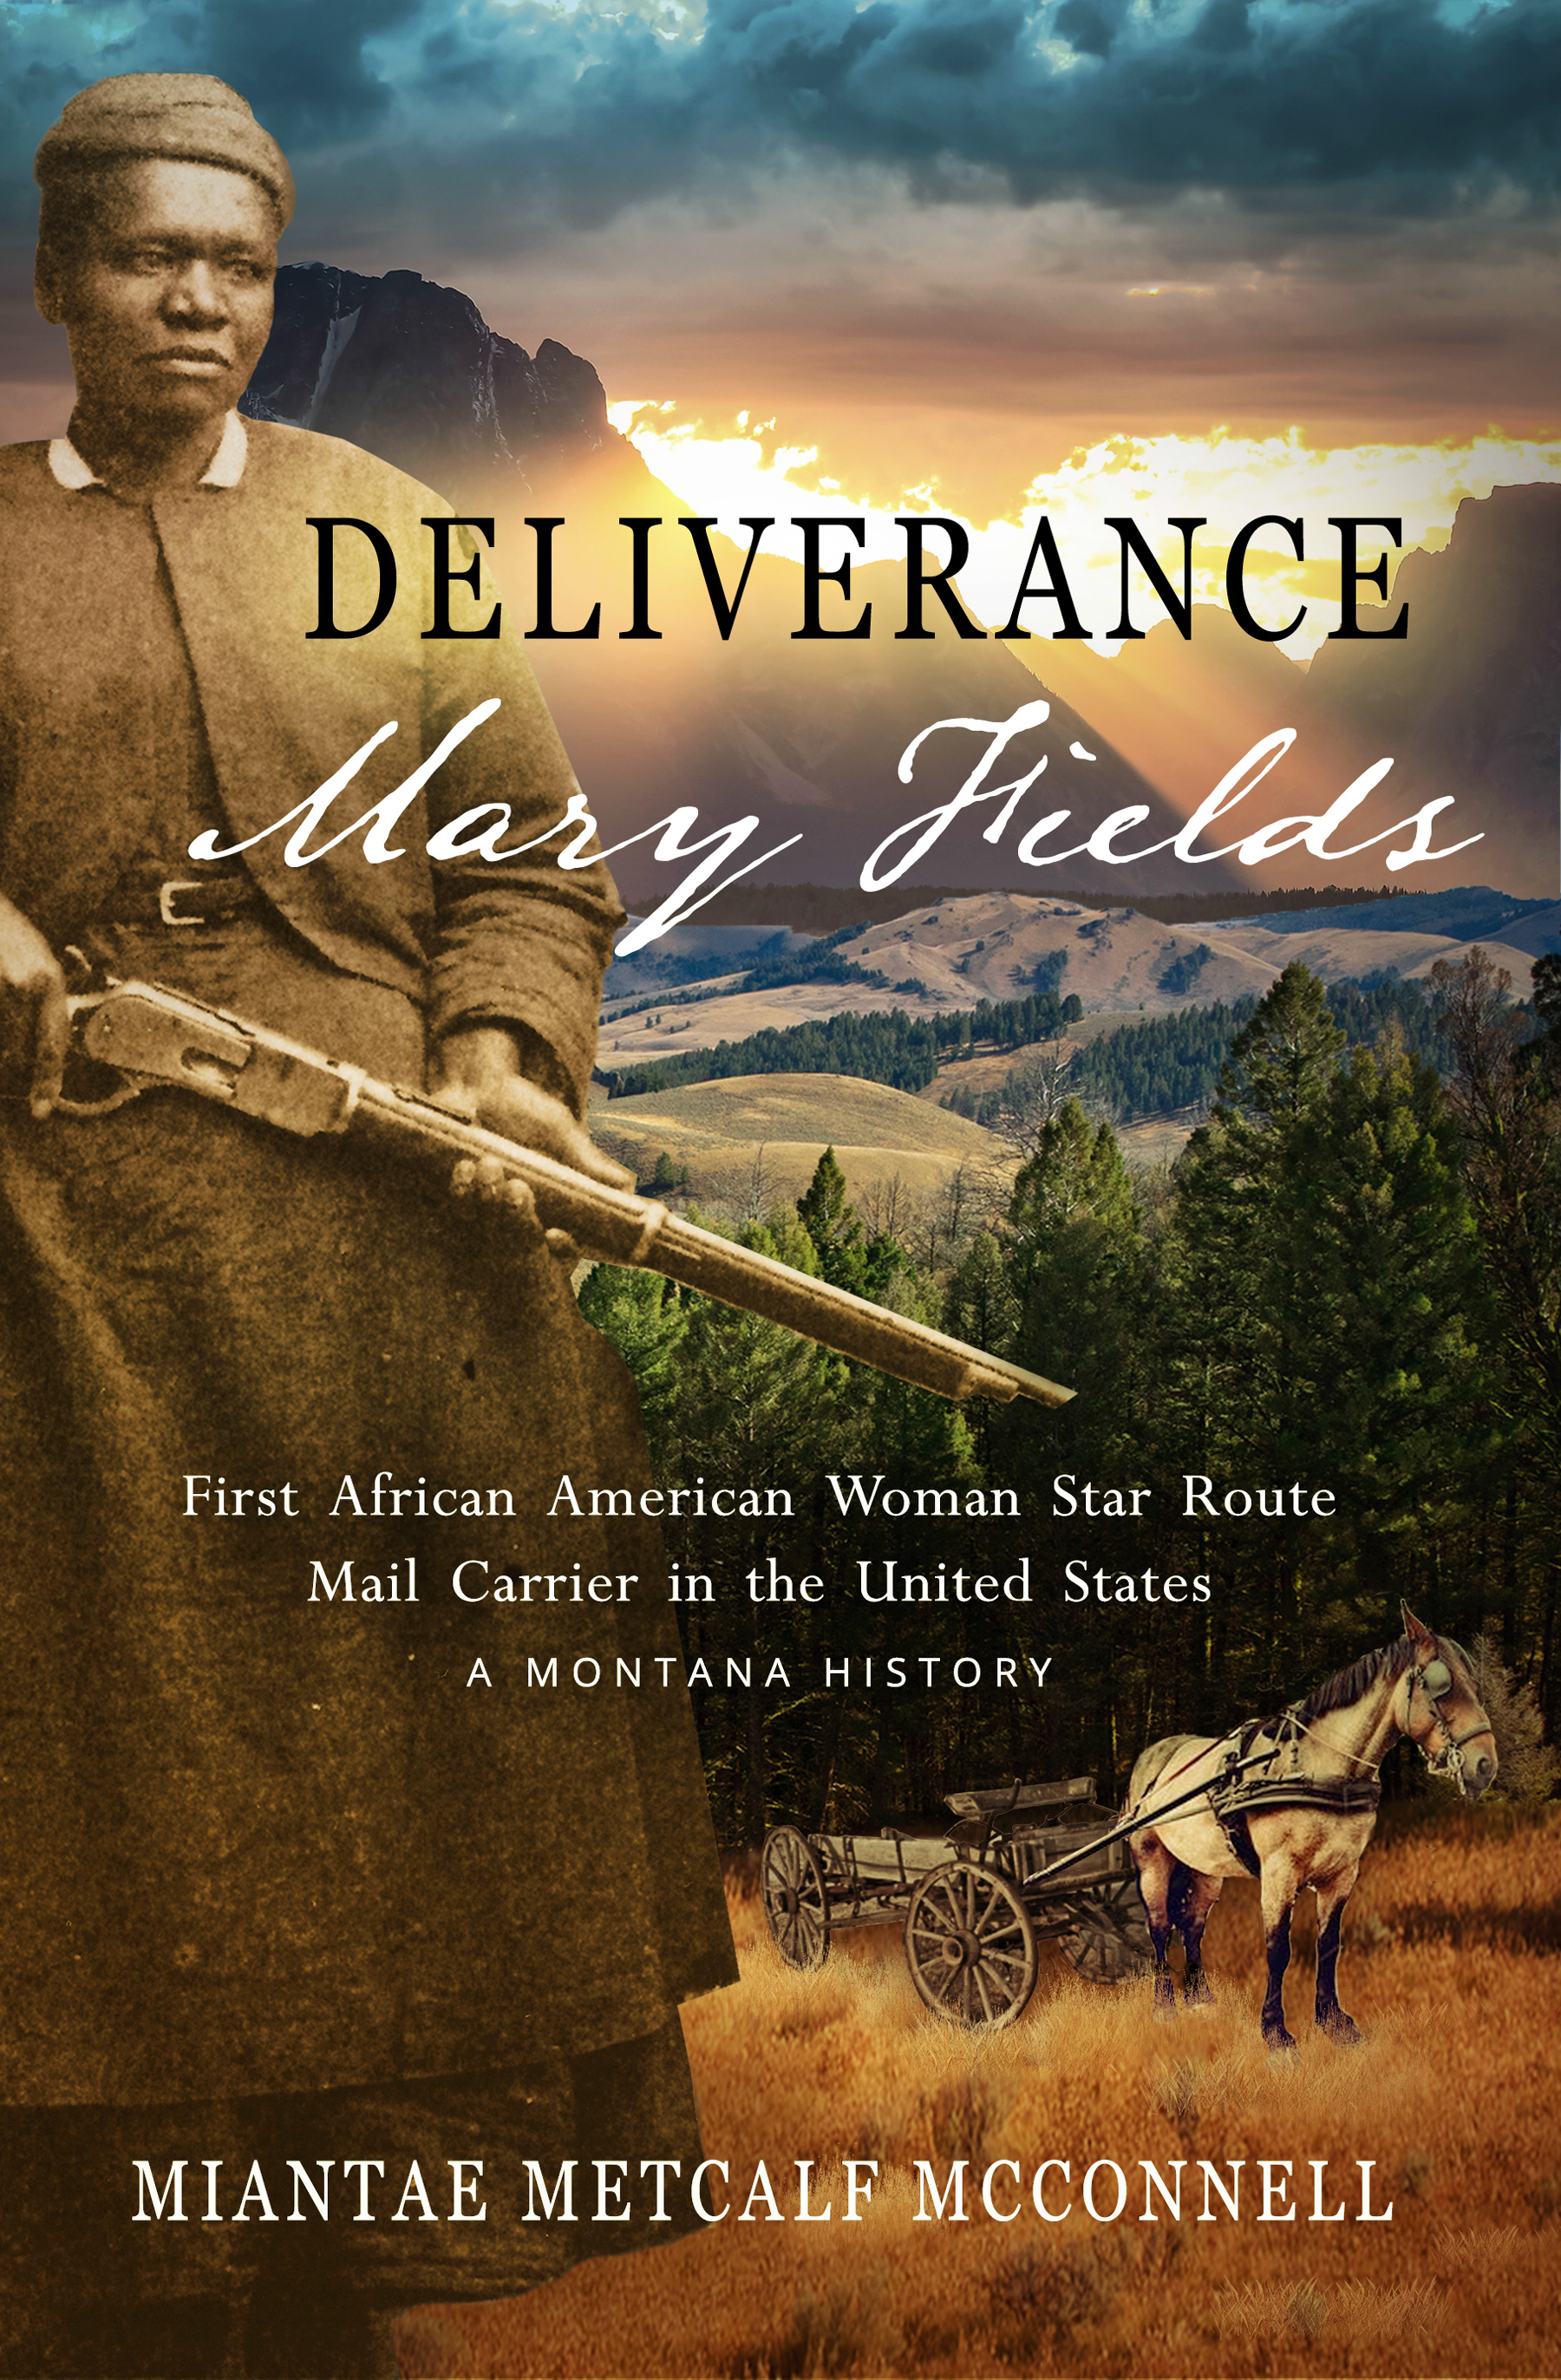 Deliverance Mary Fields.light-front book cover.jpg